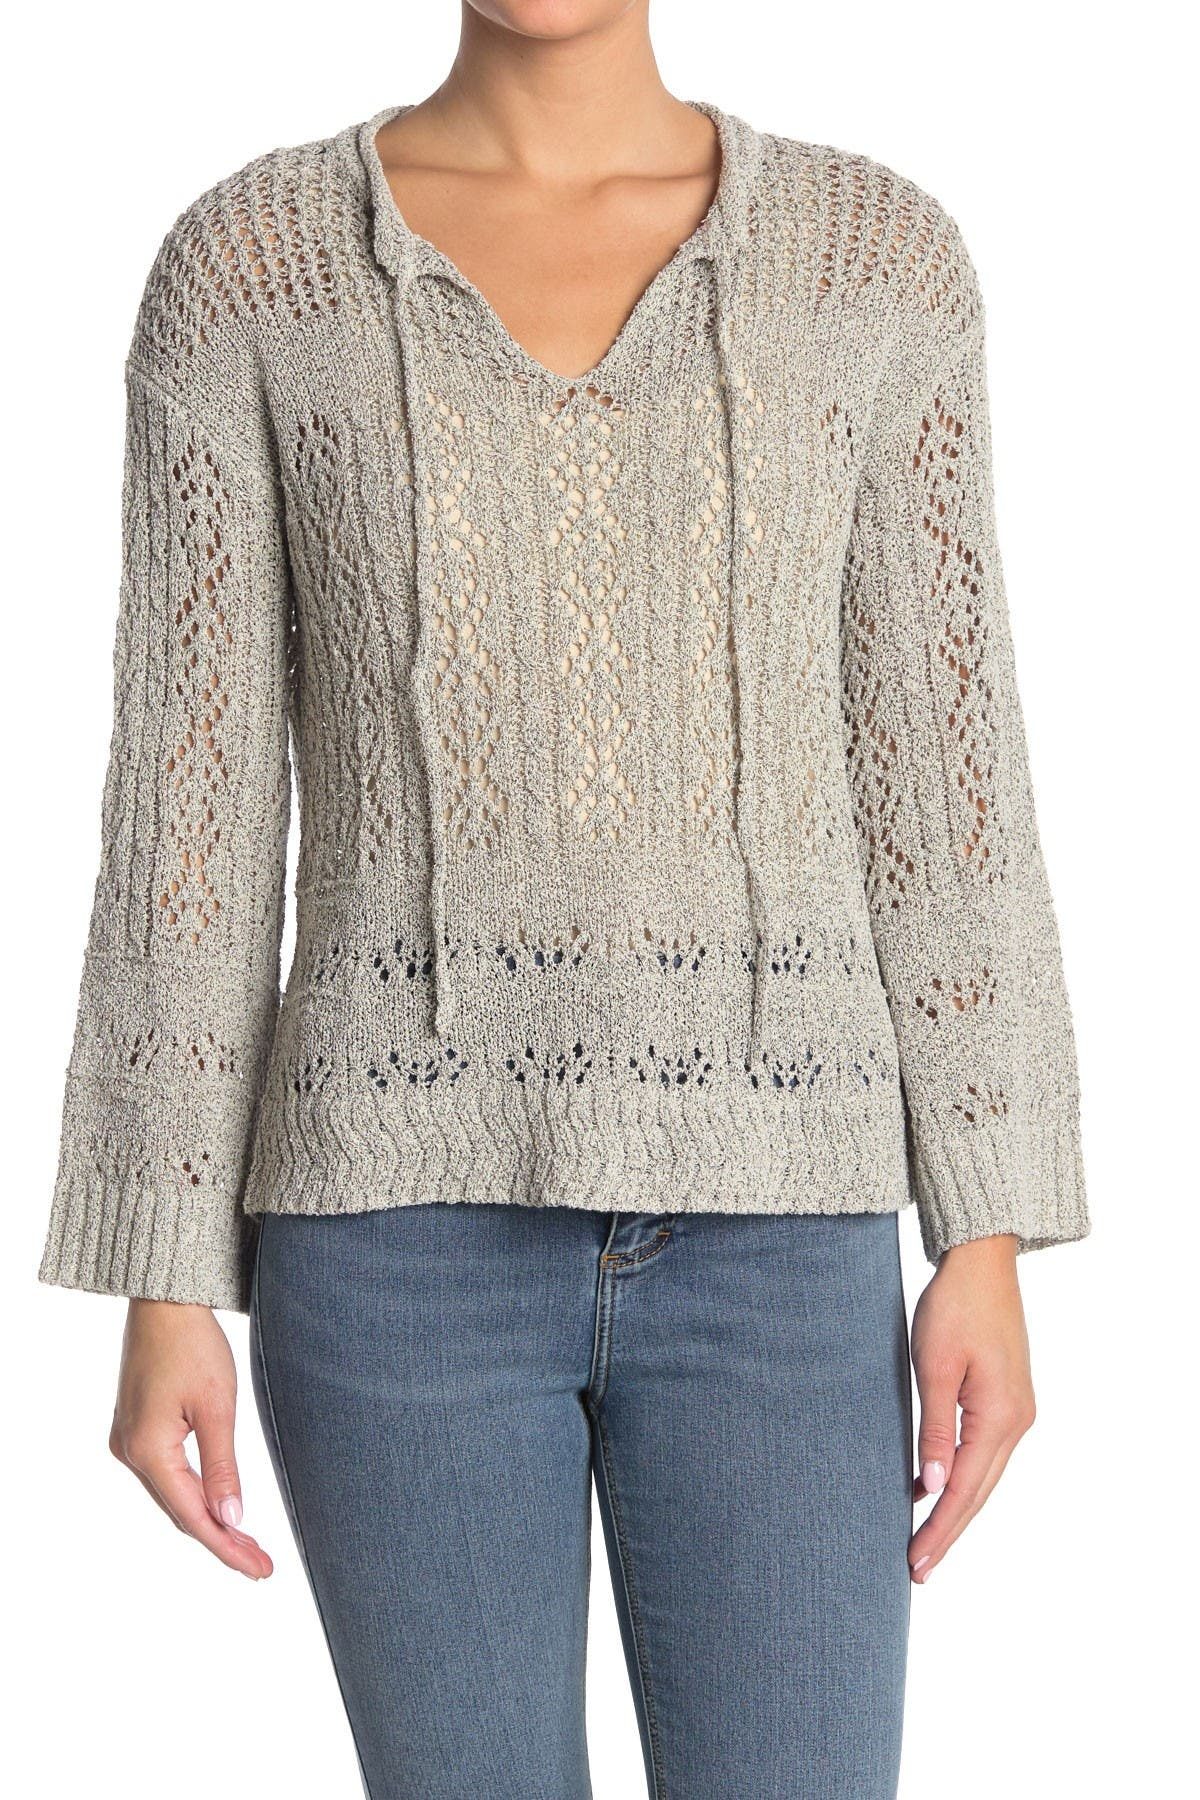 Image of Lush Open Knit Pullover Top